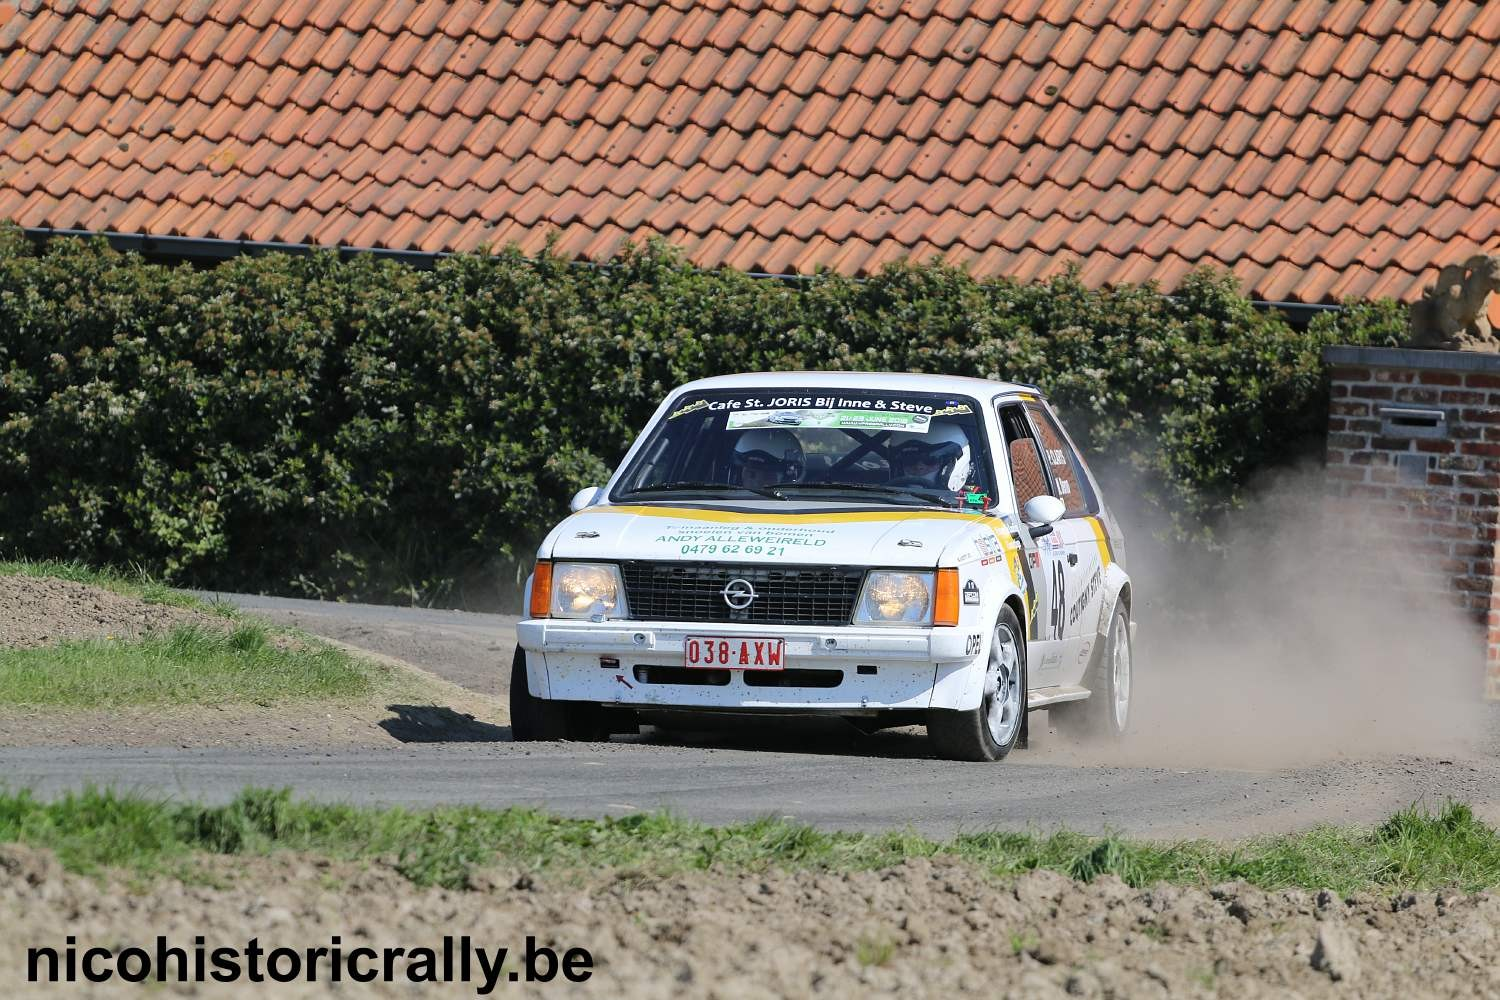 Pascal Clarys in de Monteberg Short Rally.